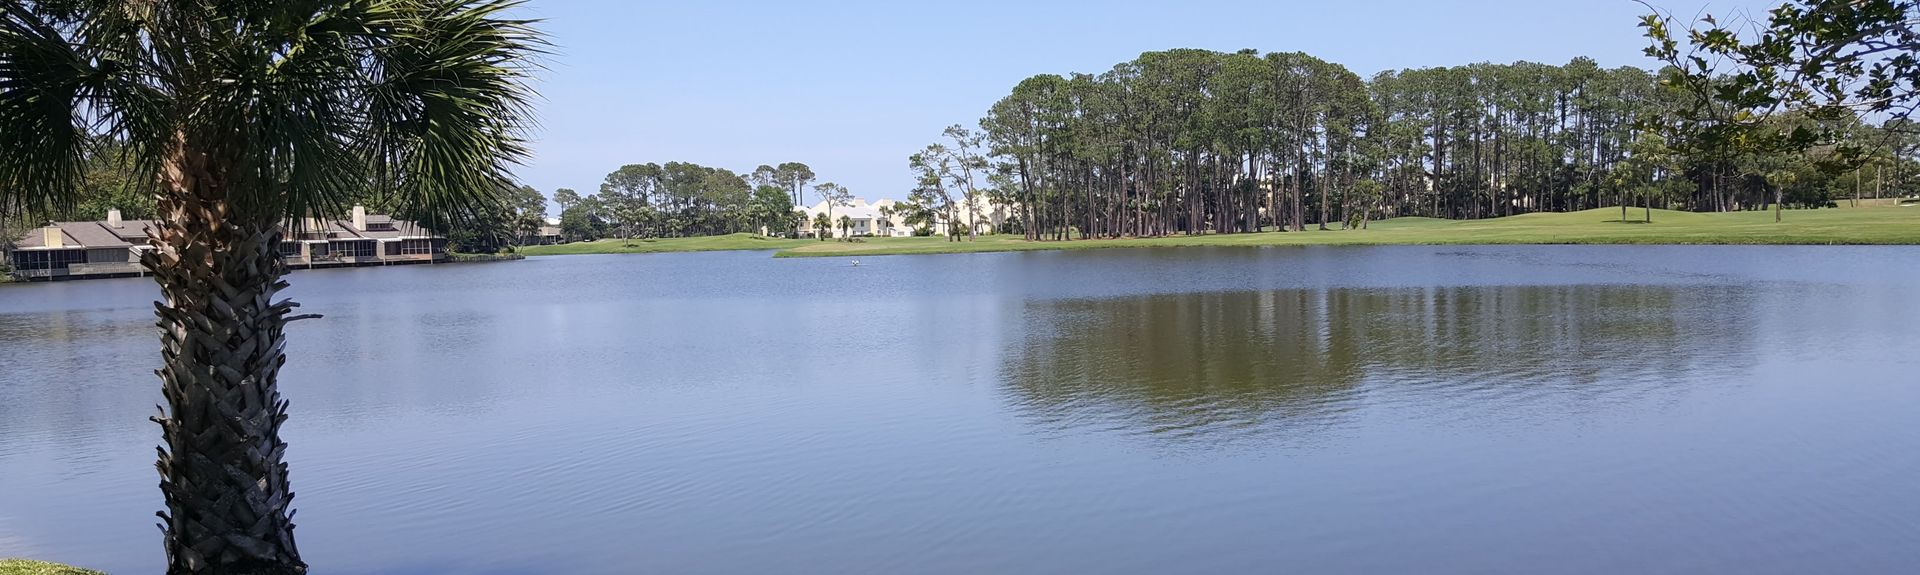 Marsh Landing Country Club, Ponte Vedra Beach, FL, USA